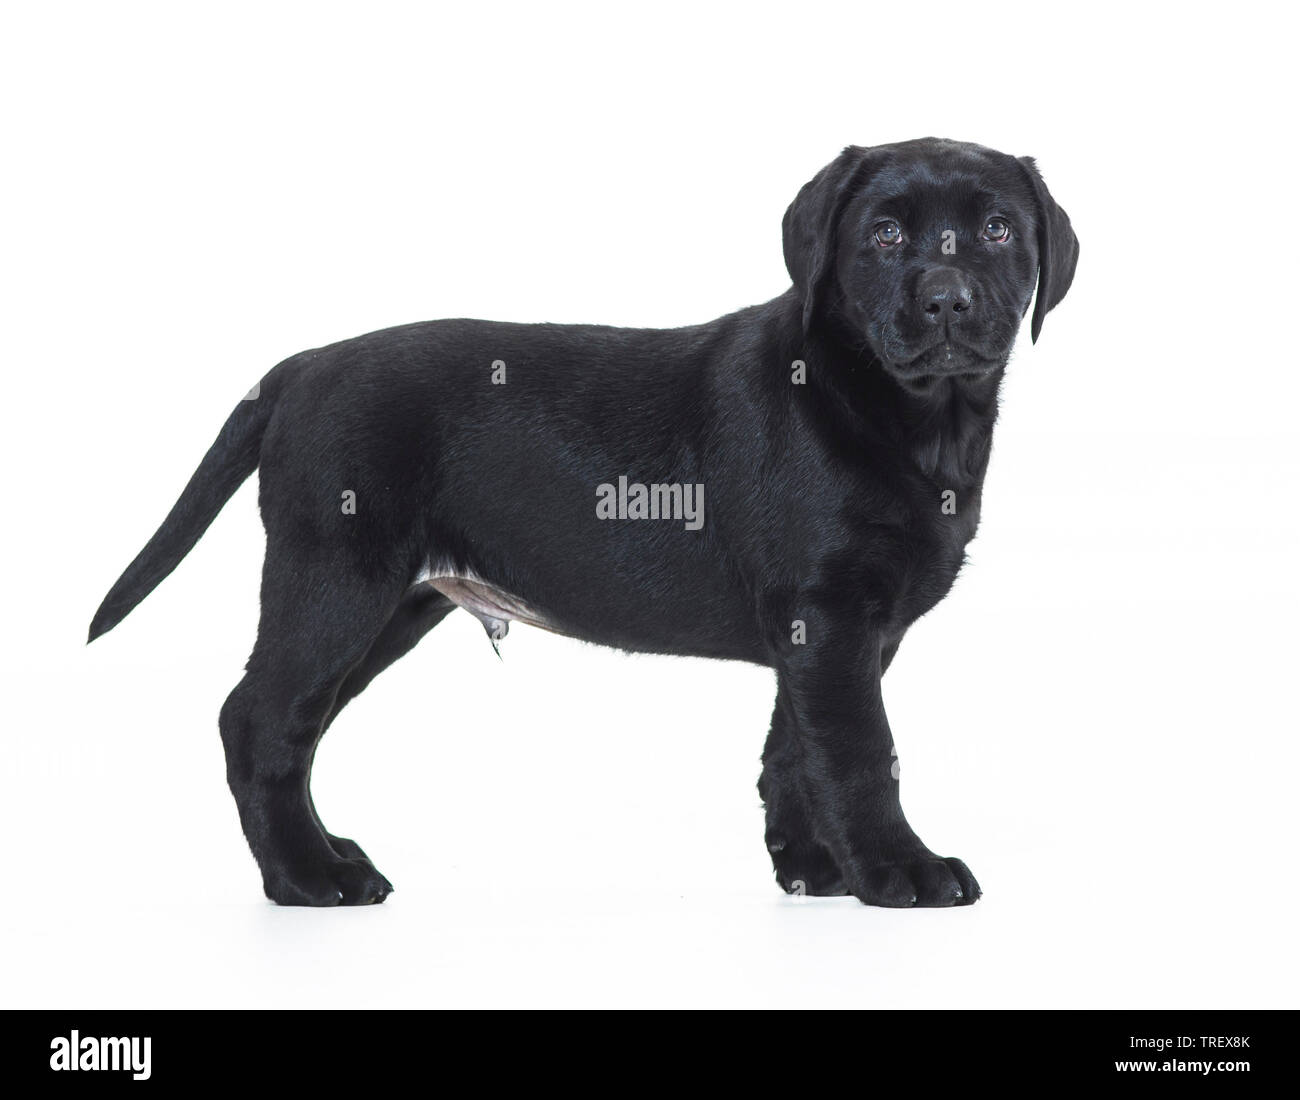 Labrador Retriever. Puppy standing, seen side-on. Studio picture against a white background. Germany.. - Stock Image